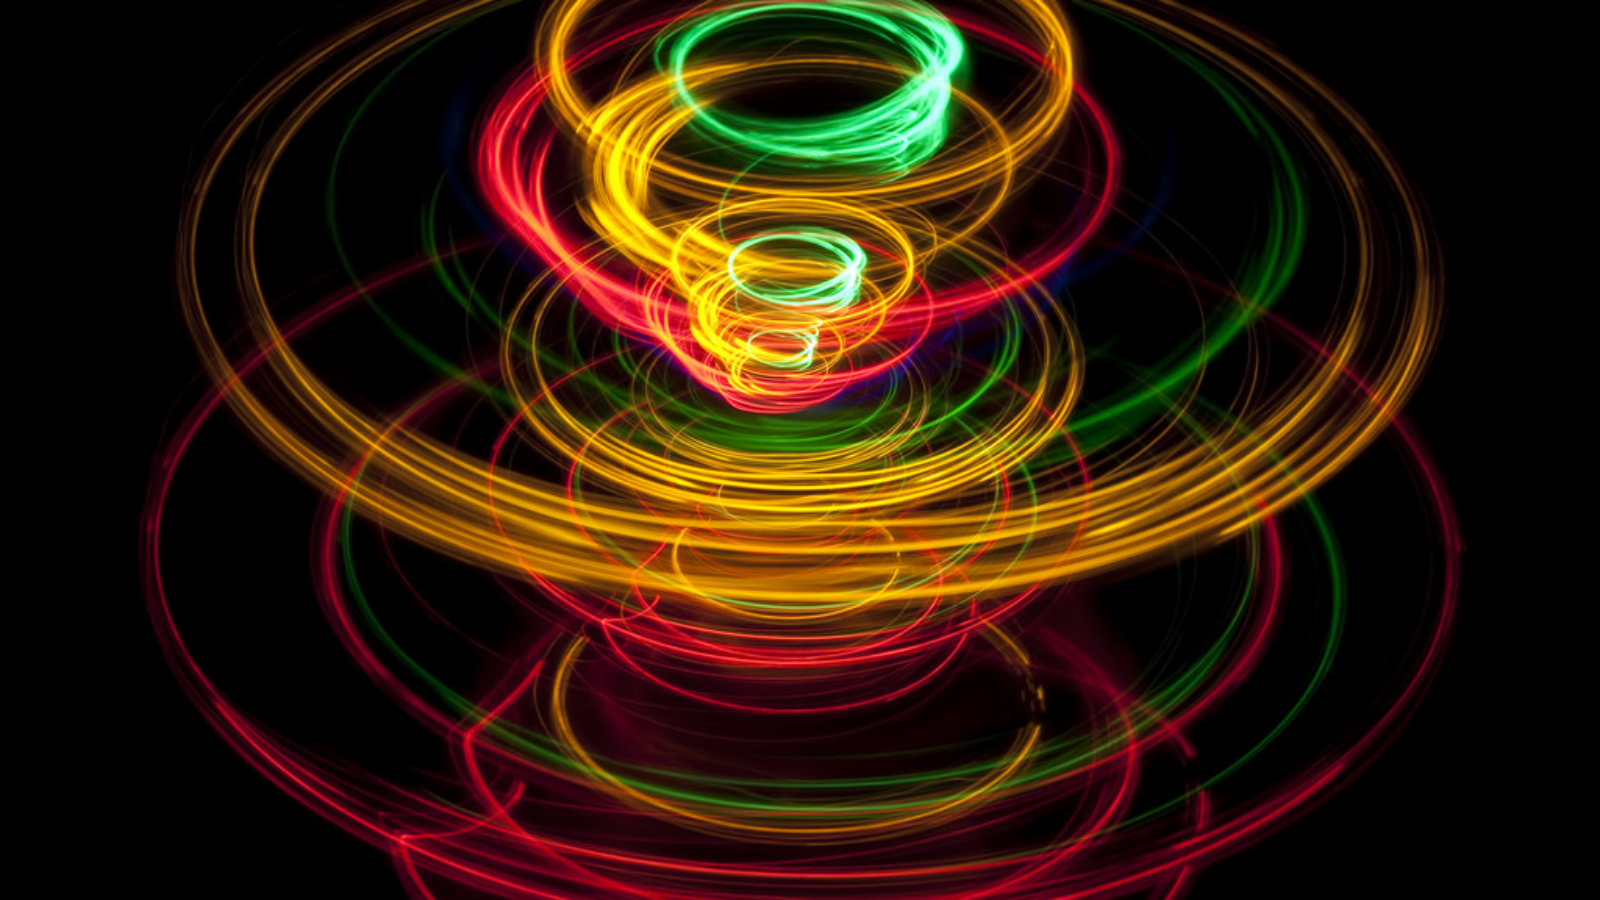 vivid lines of light tracing a pattern reminiscent of a spinning top toy